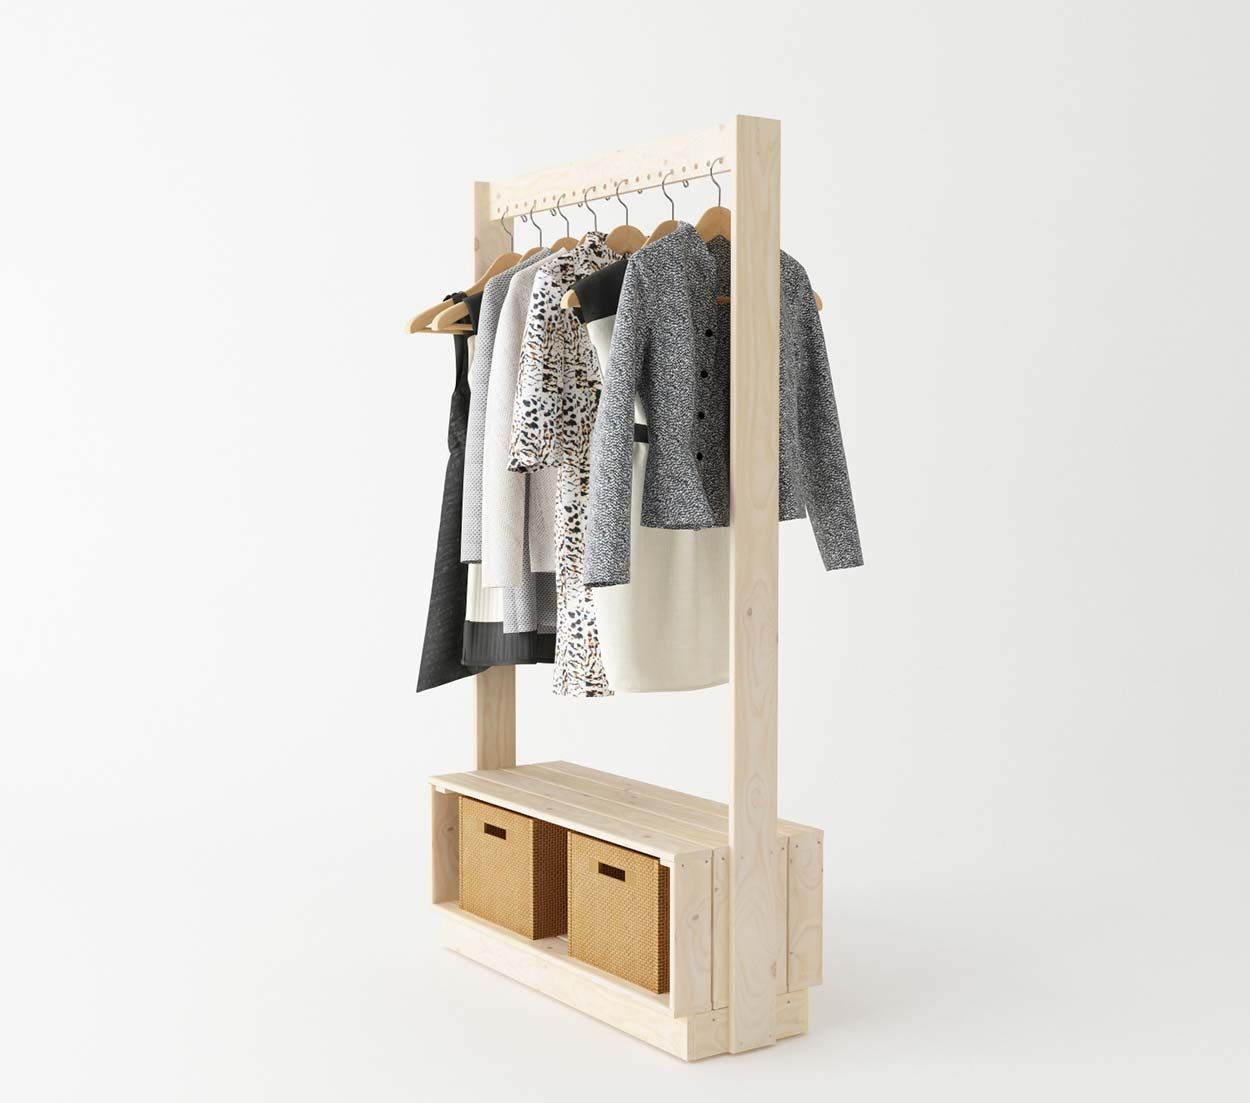 Beka Clothes Rack LUFE